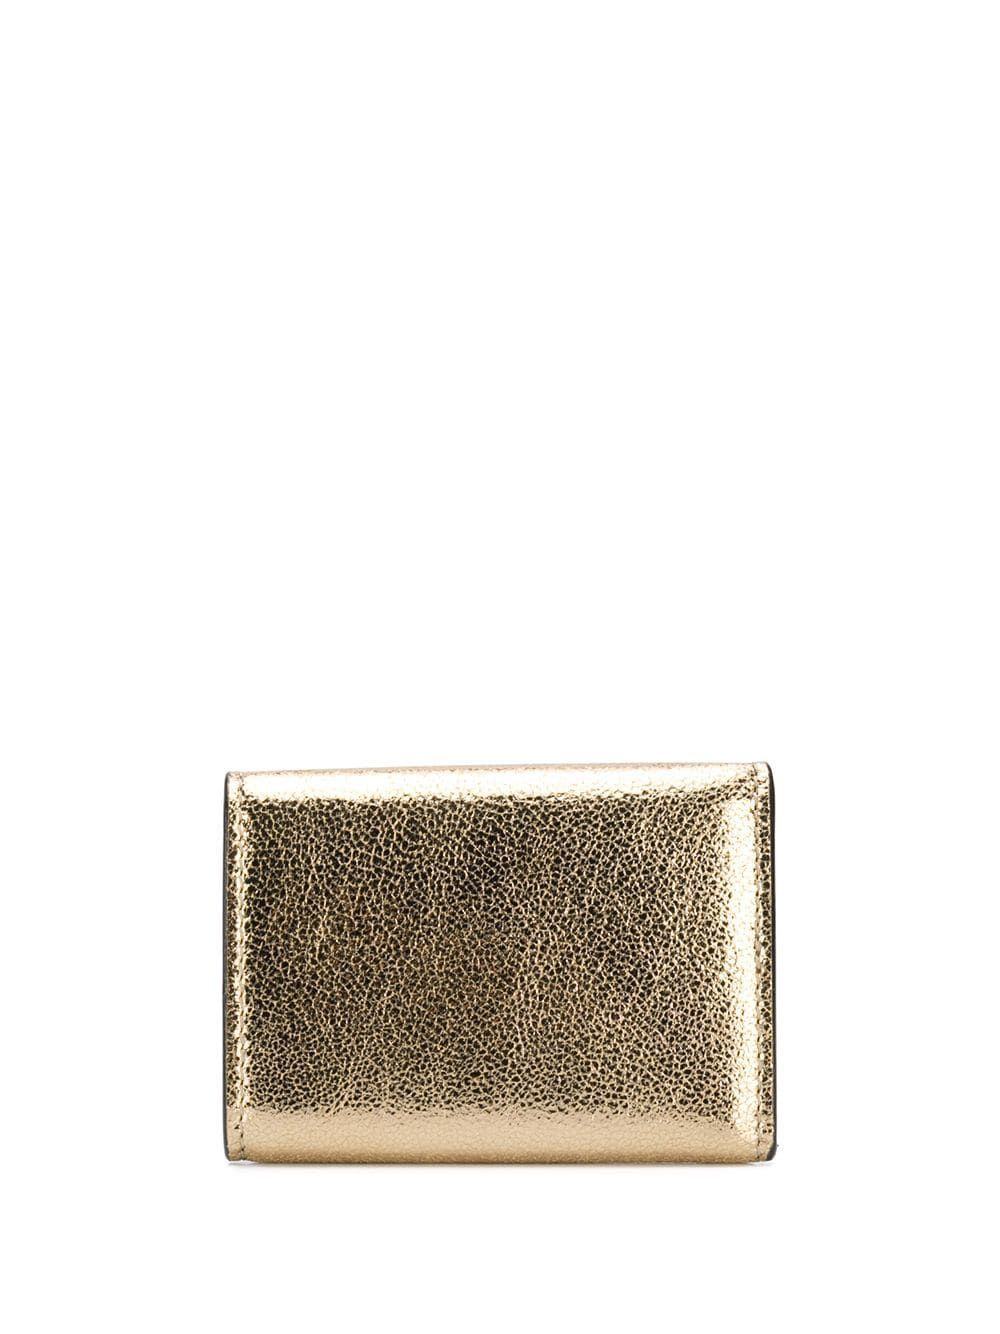 JIMMY CHOO WOMEN'S NEMOPQXGOLD GOLD LEATHER WALLET